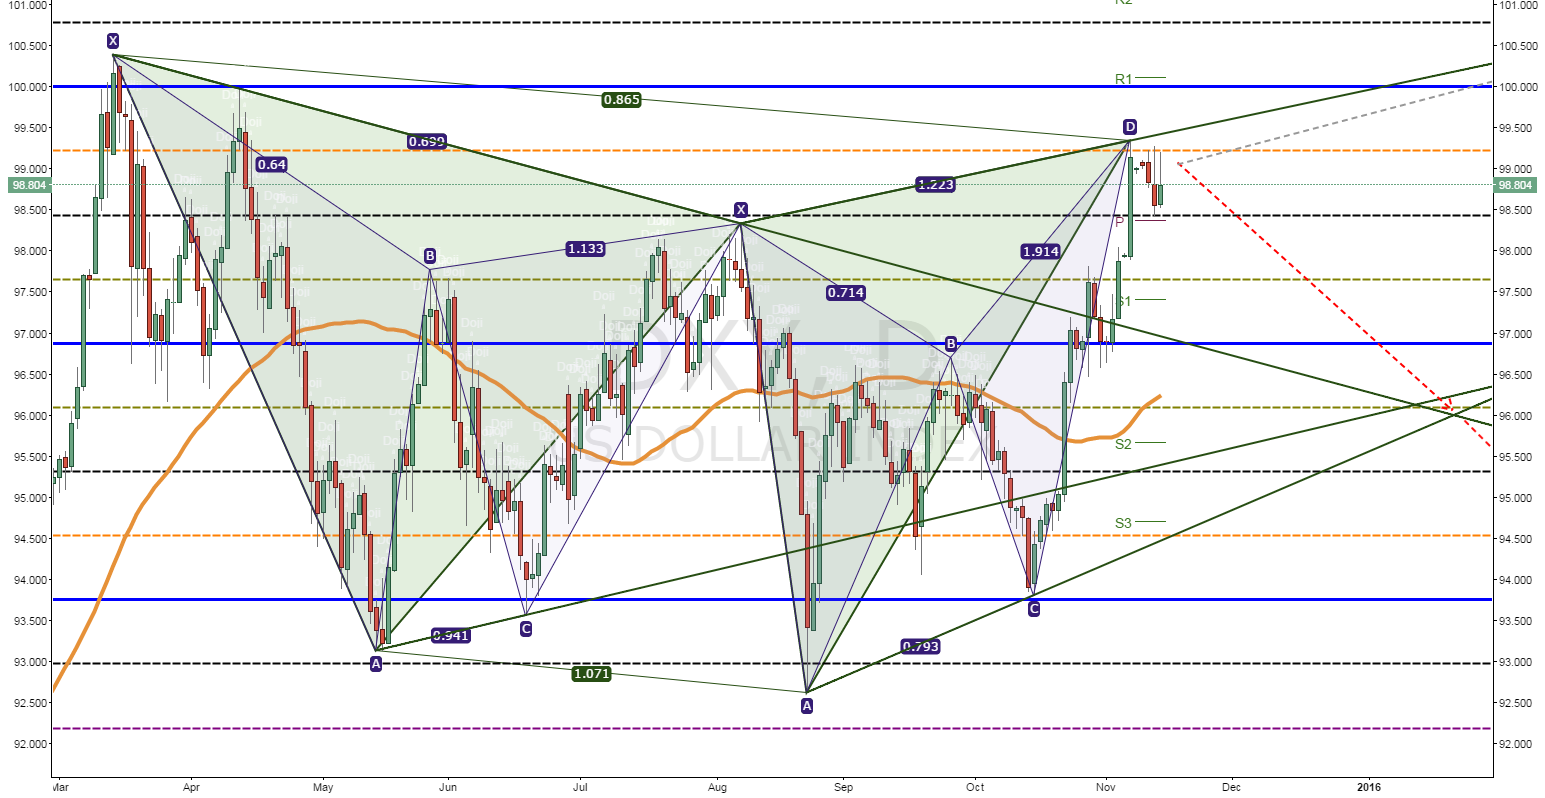 DXY Dollar Index - short-term decision point